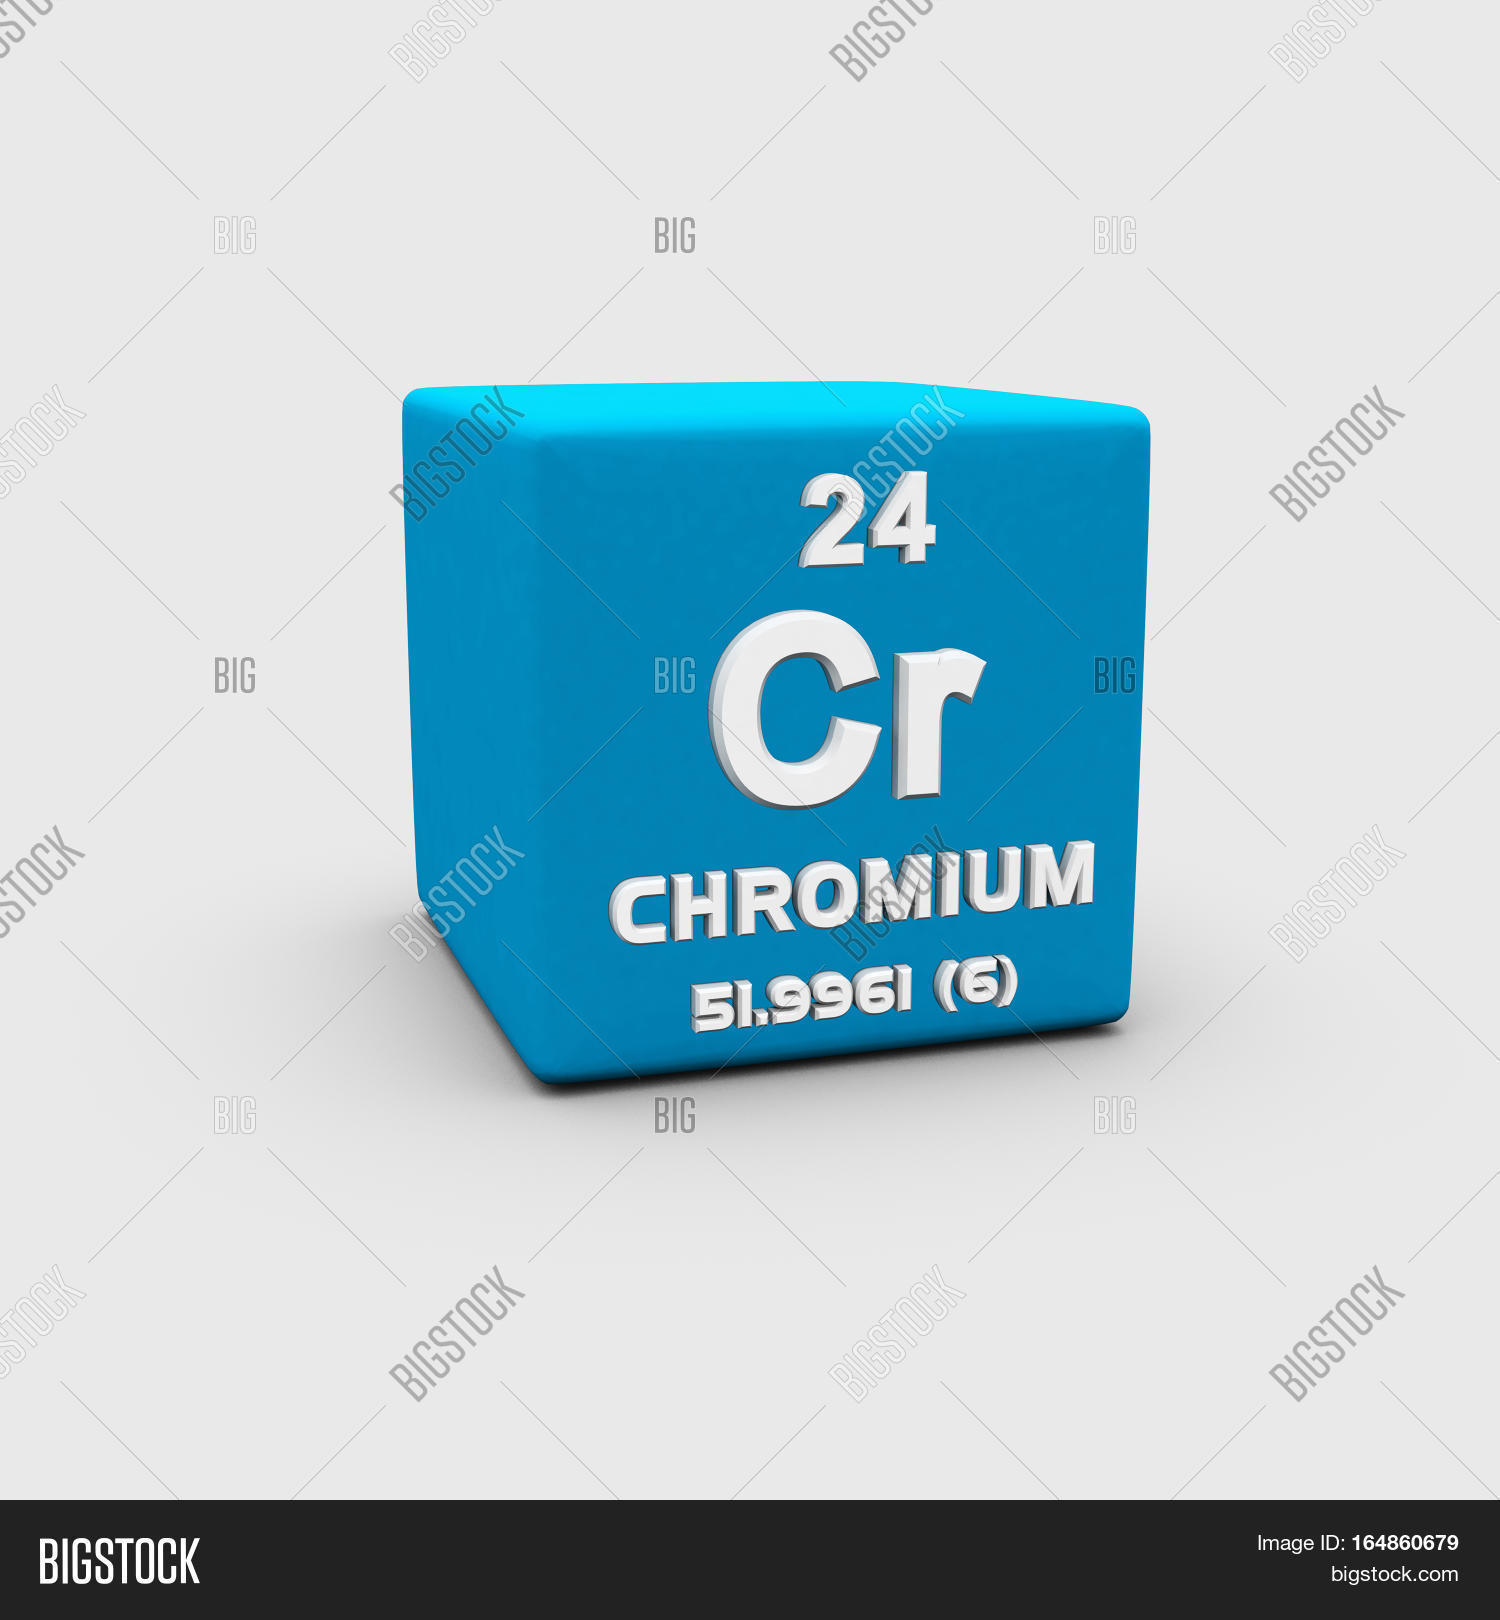 Atomic symbol cr gallery symbol and sign ideas chromium chemical element symbol cr image photo bigstock chromium is a chemical element with symbol cr buycottarizona